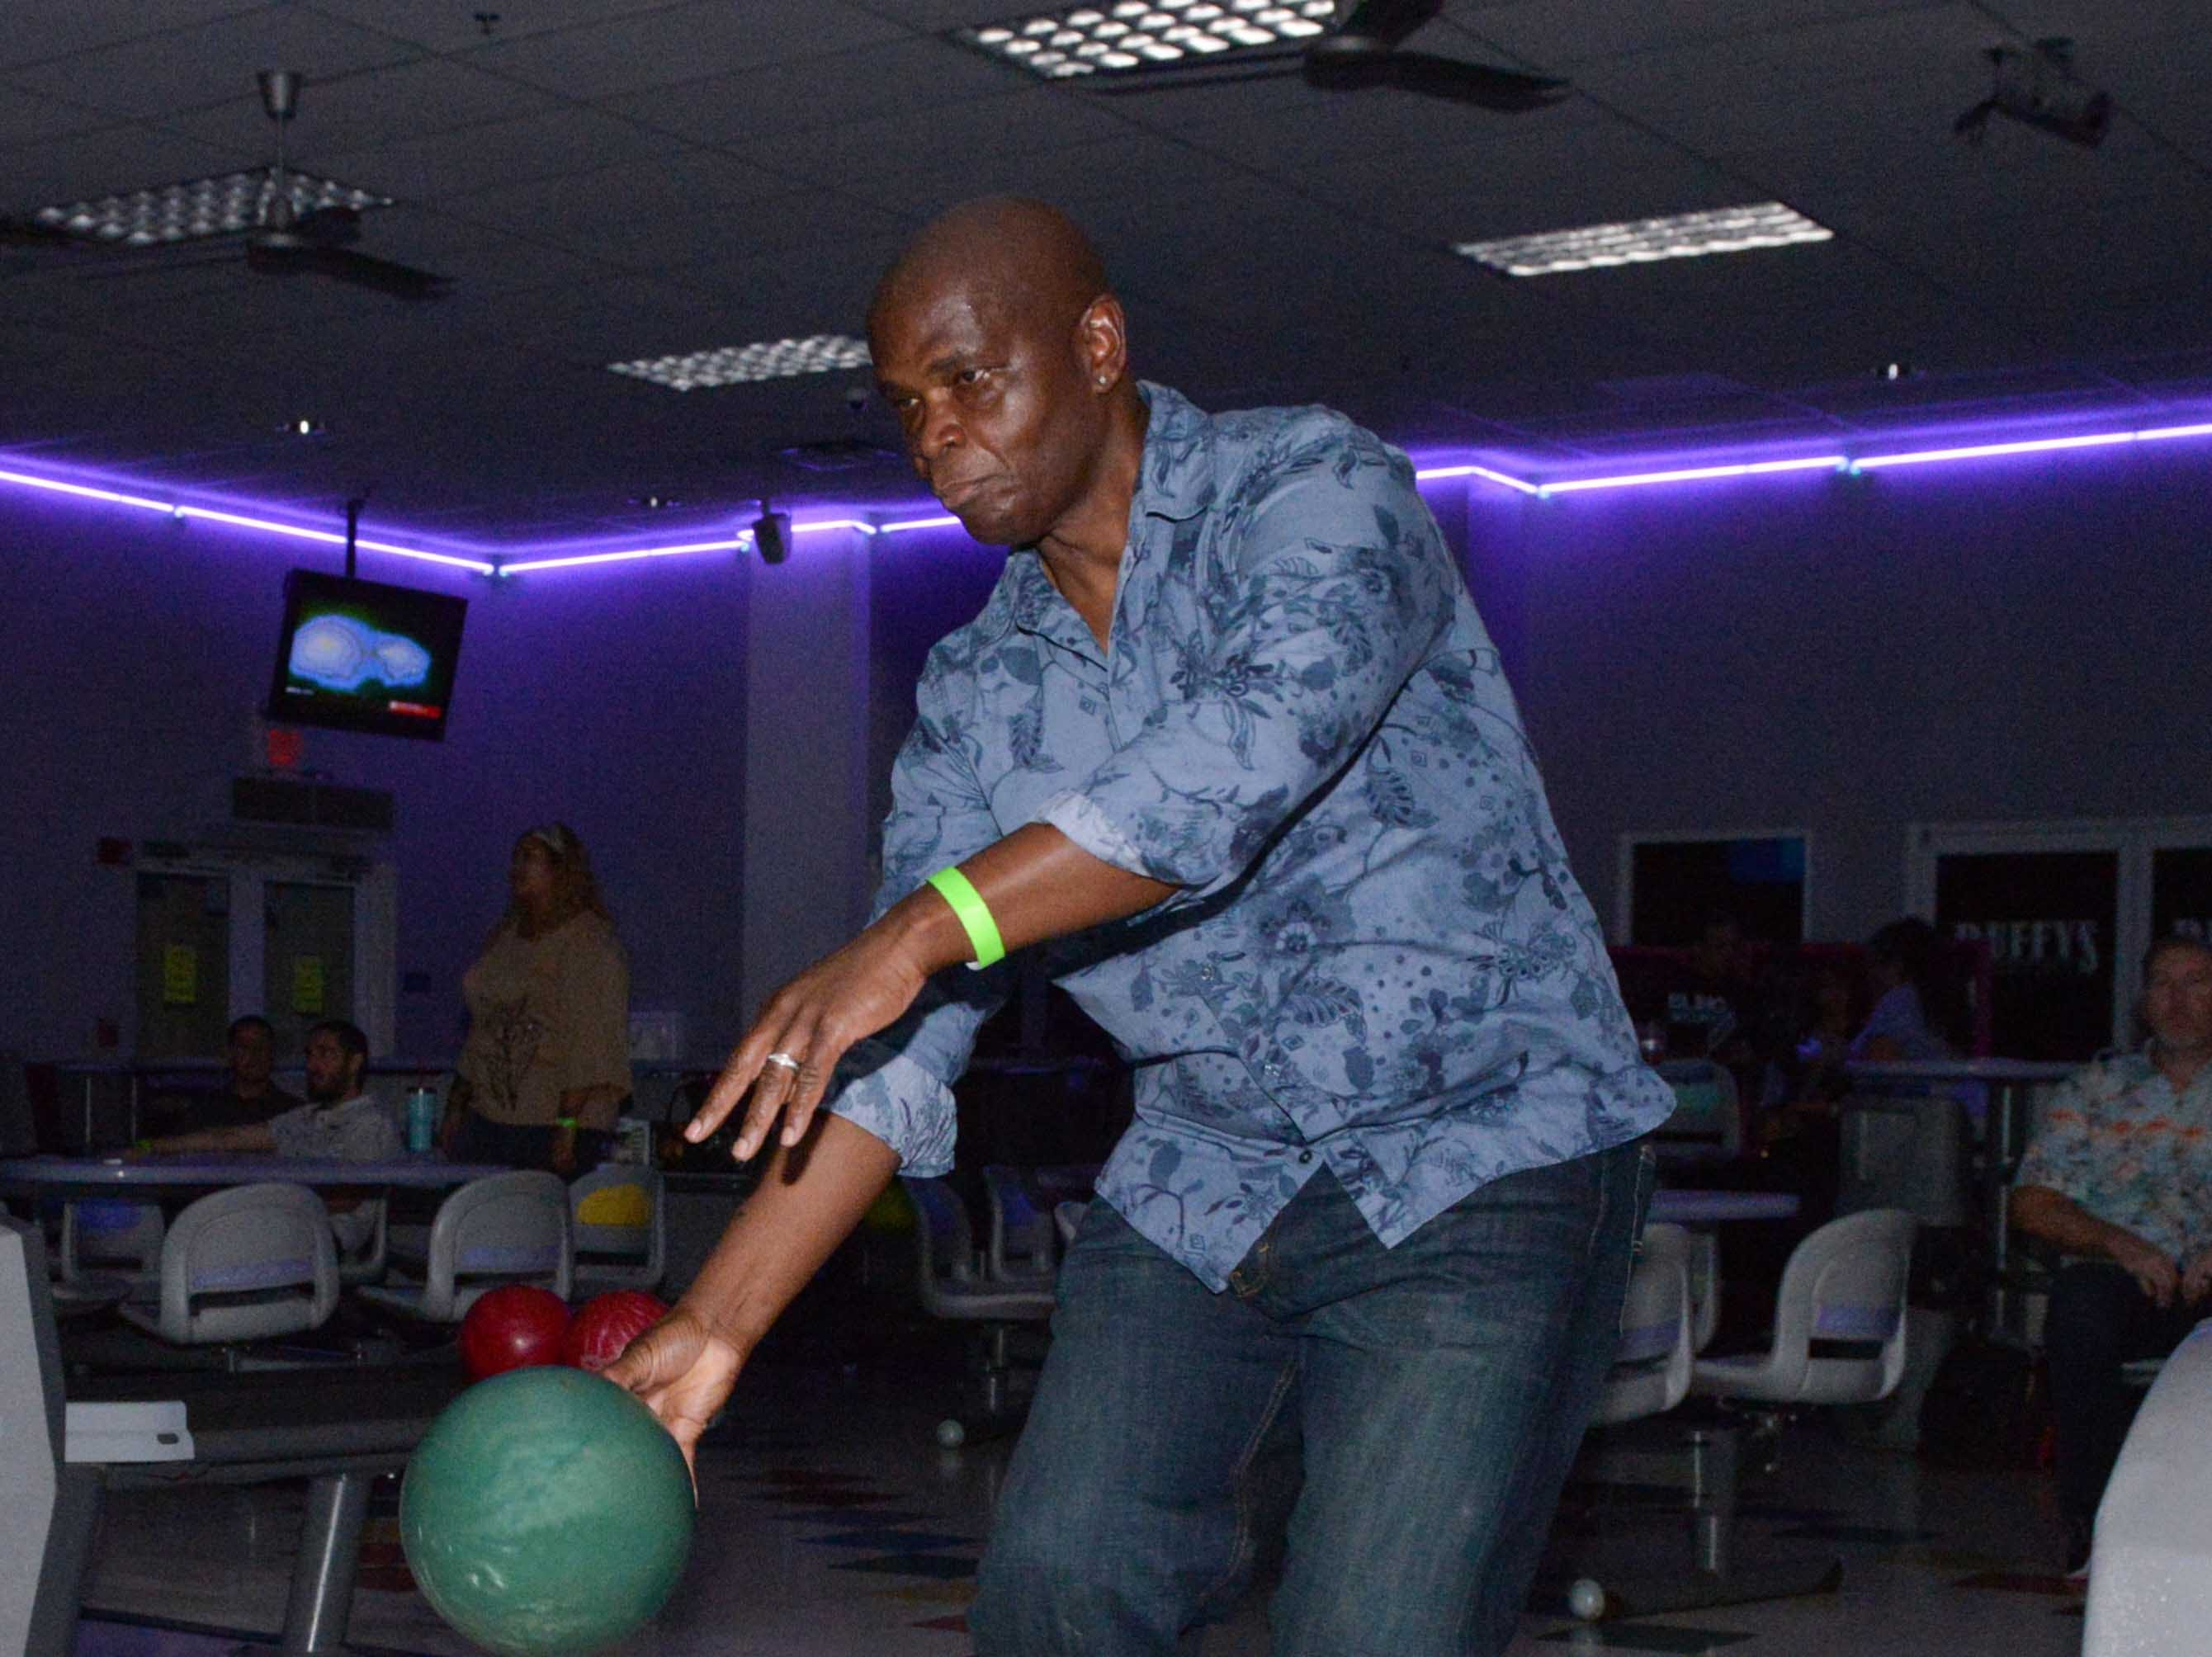 Al Skeete bowls at the Cosmic Family Fun party  to support HANDSof St. Lucie County.